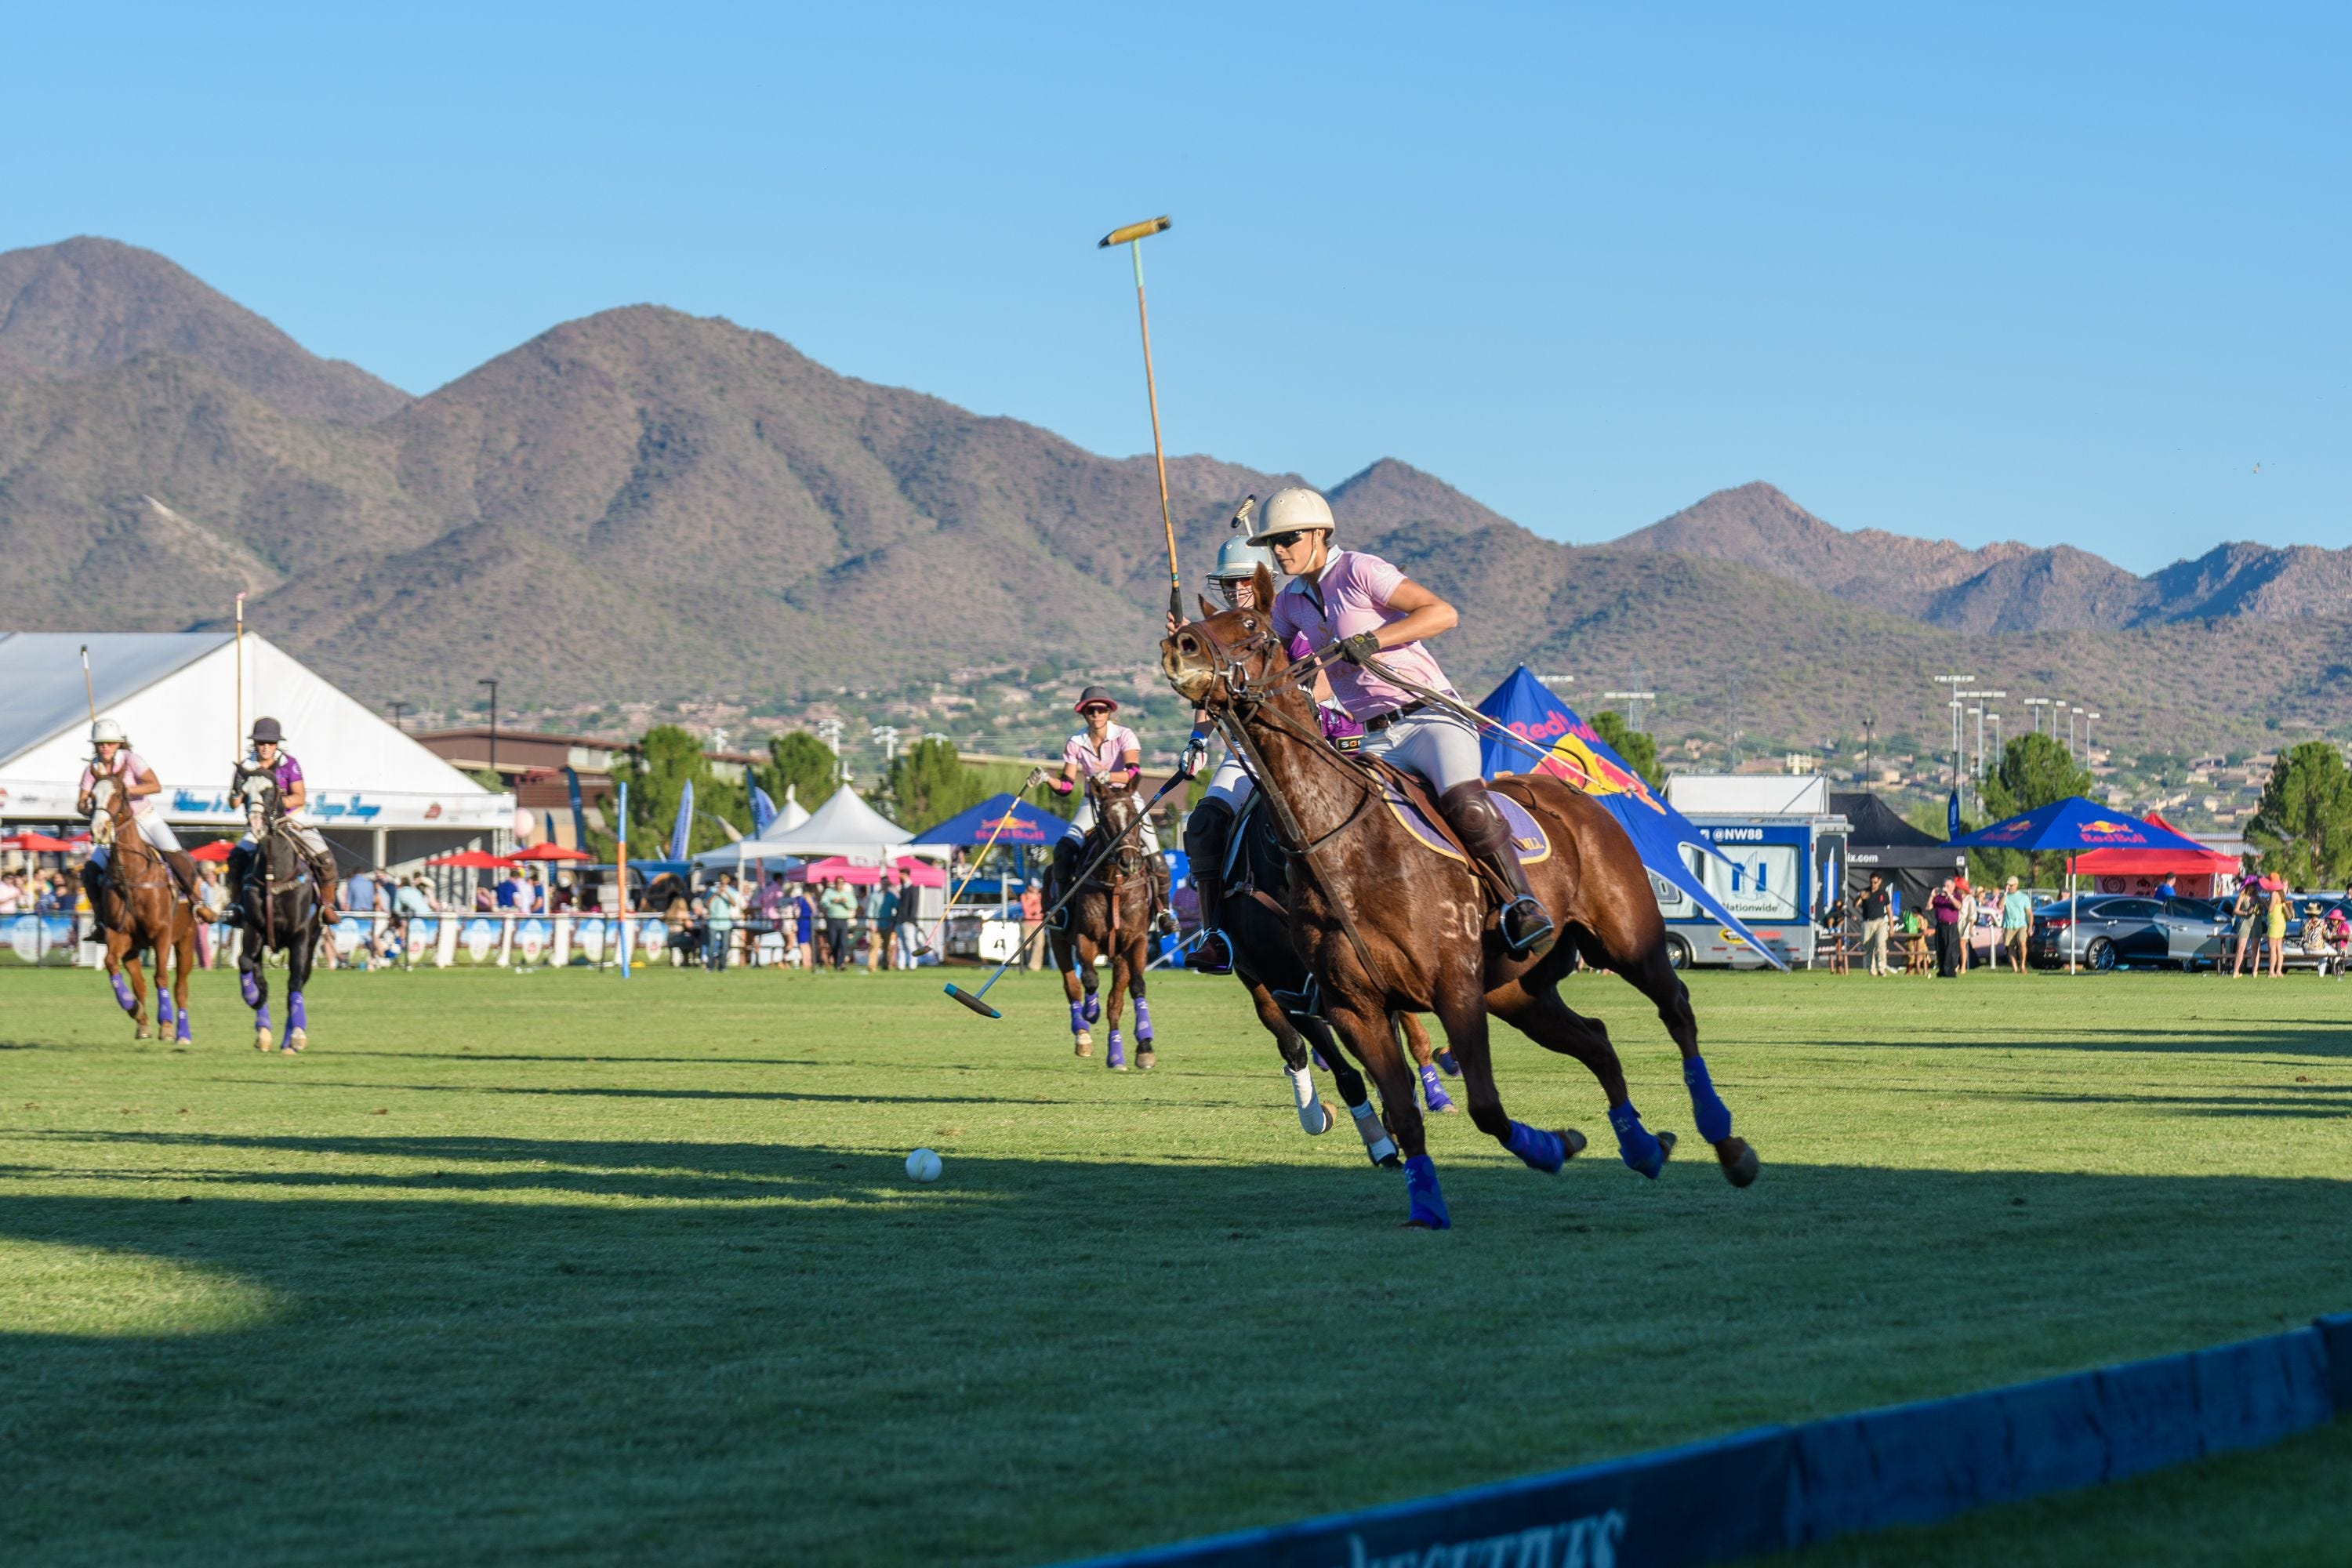 11/11-12: 7th annual Bentley Scottsdale Polo Championships: